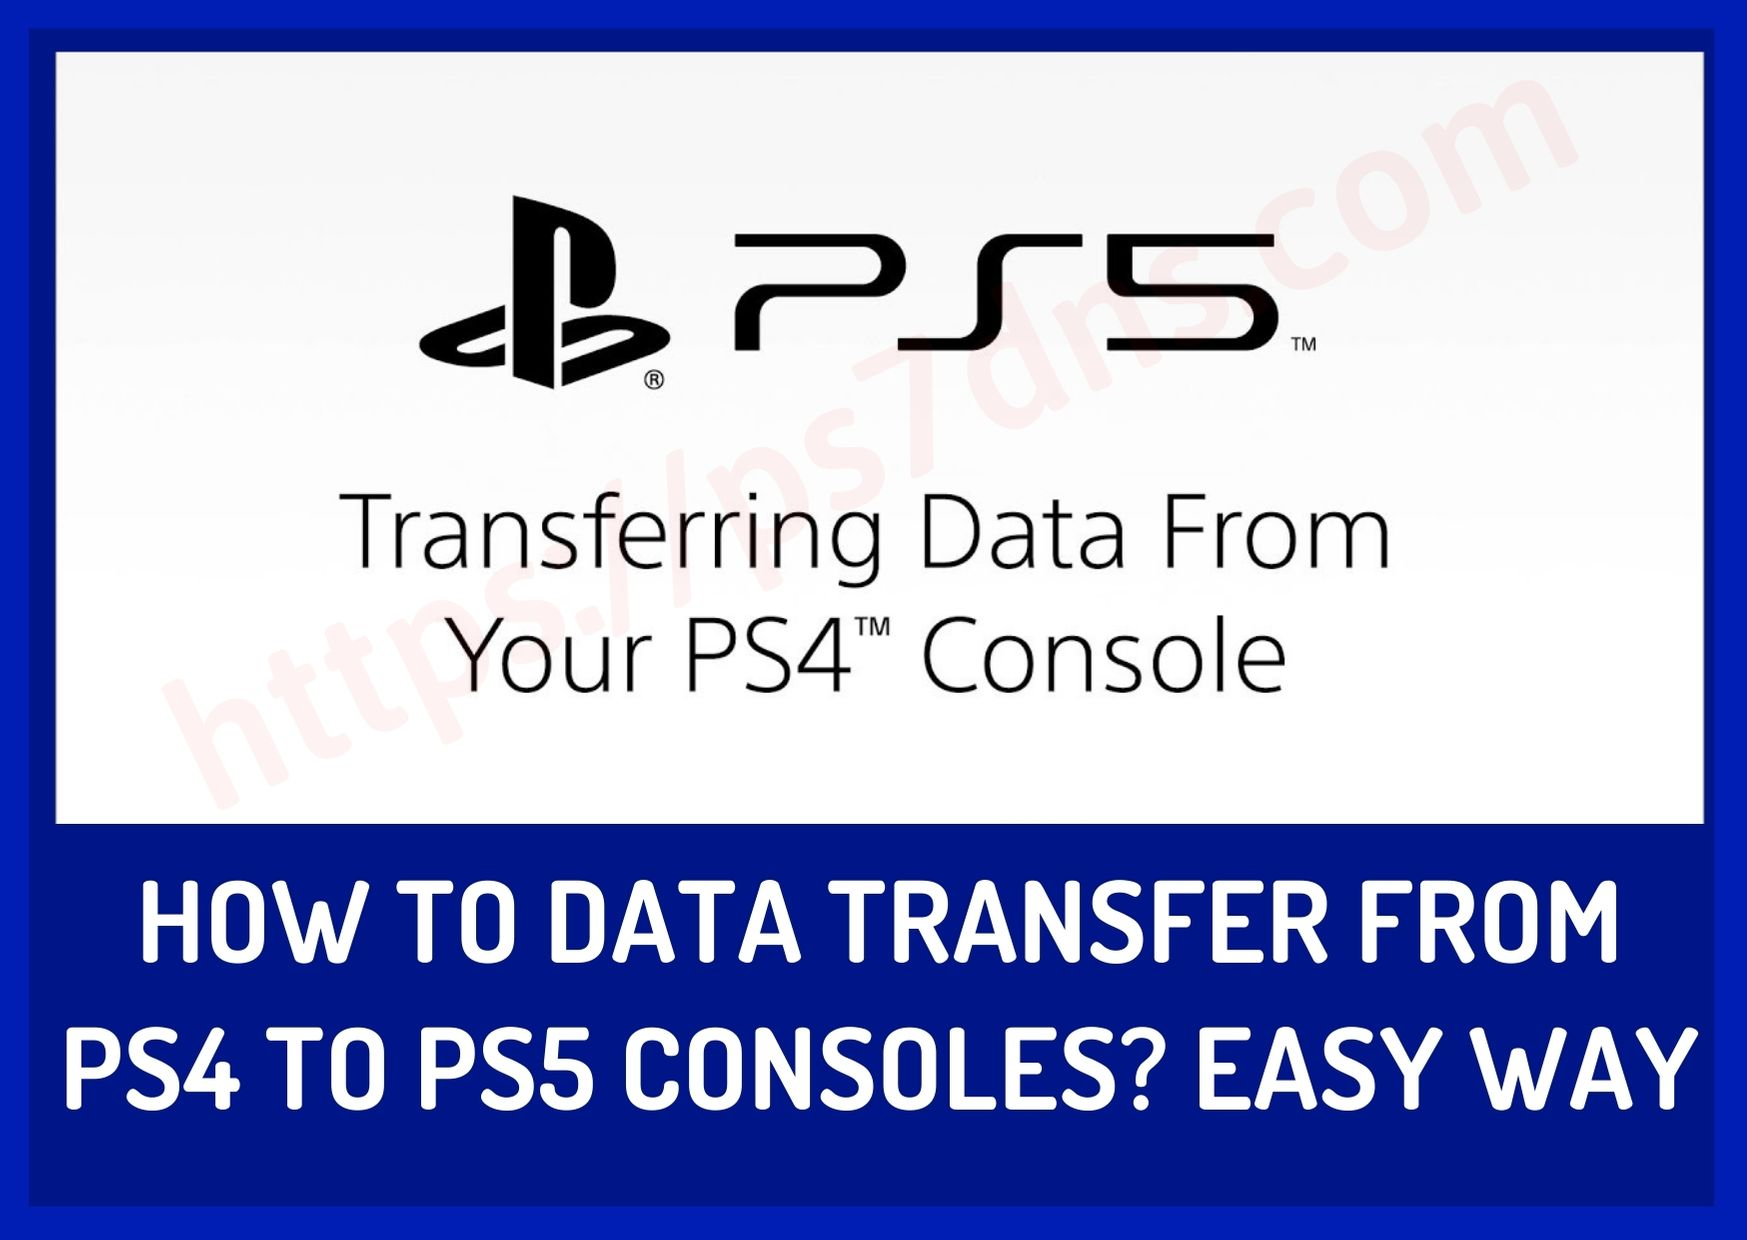 How to Data Transfer from PS4 to PS5 Consoles? Easy Way